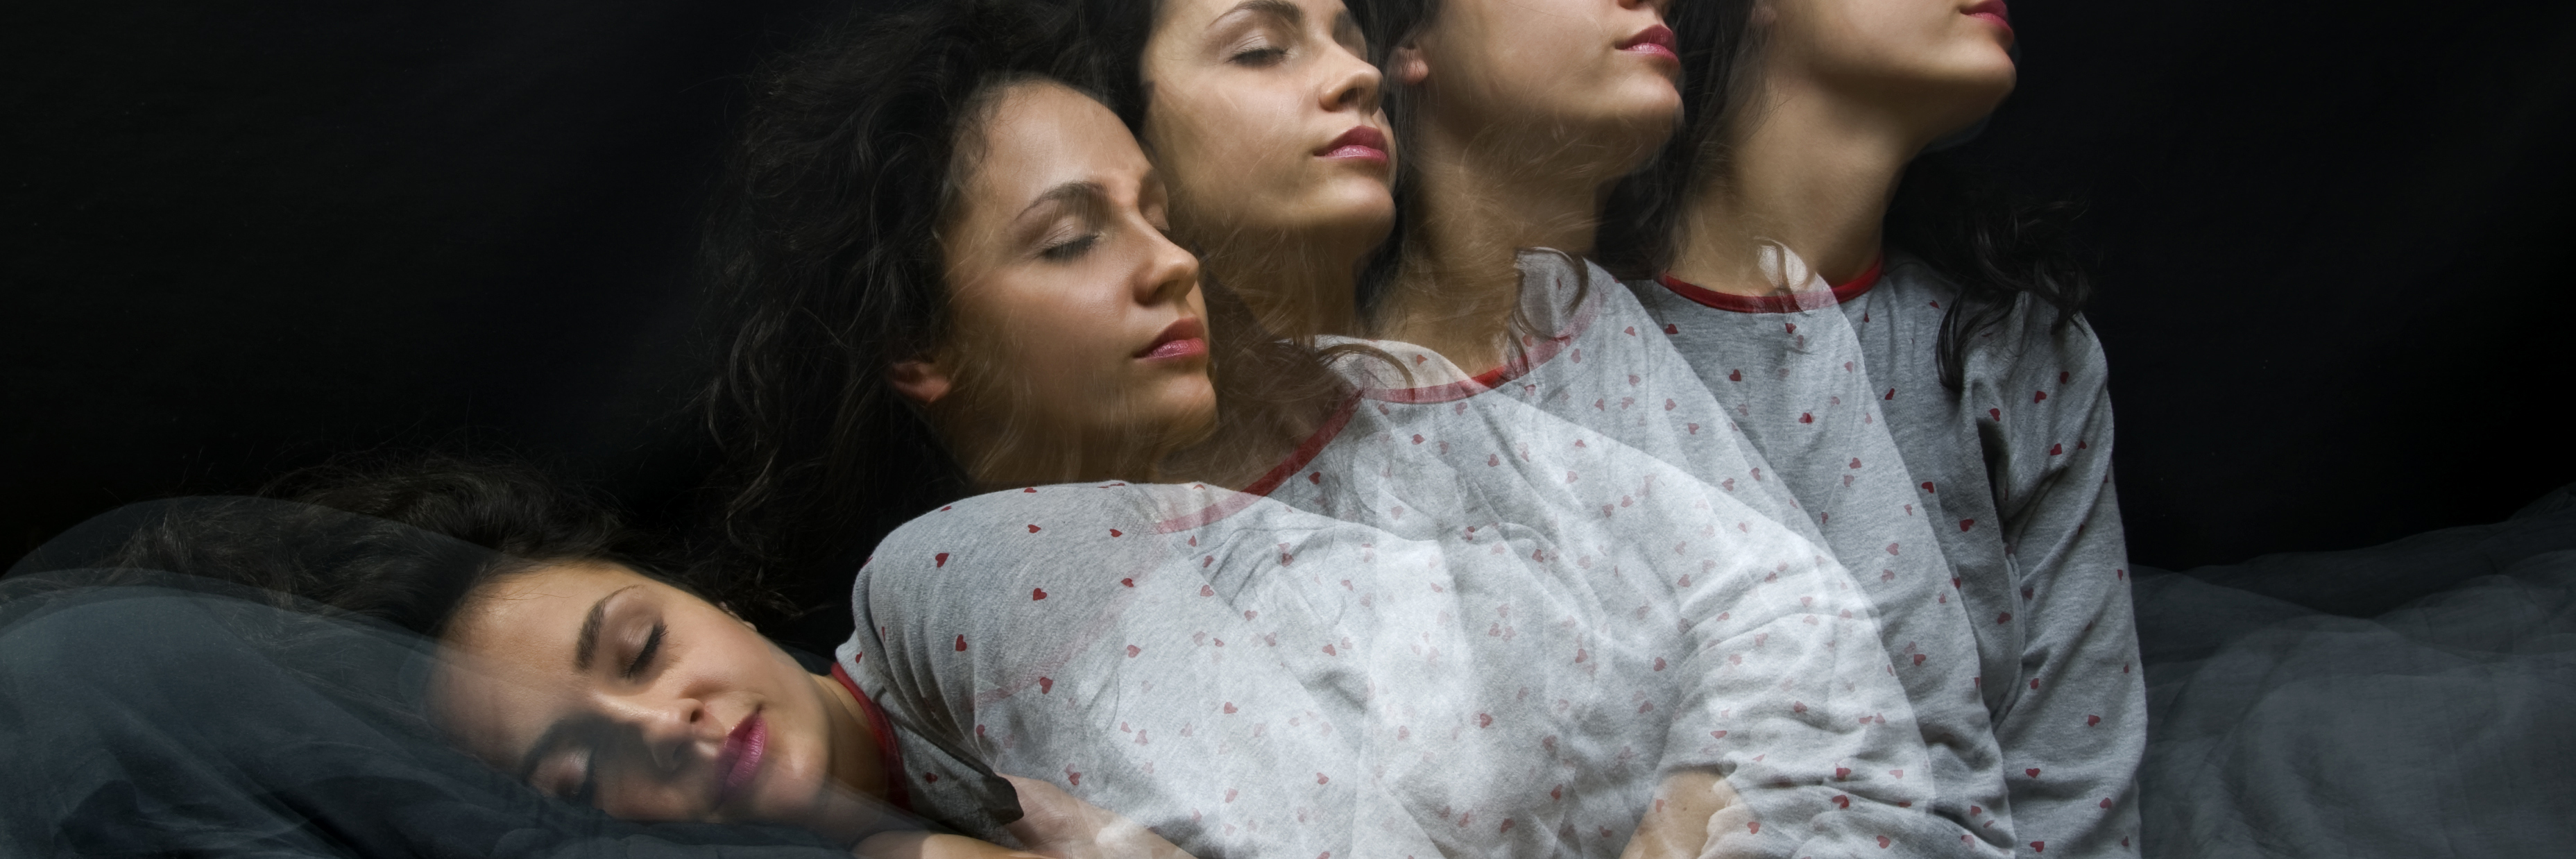 Multi-exposure of woman sleeping and waking up.